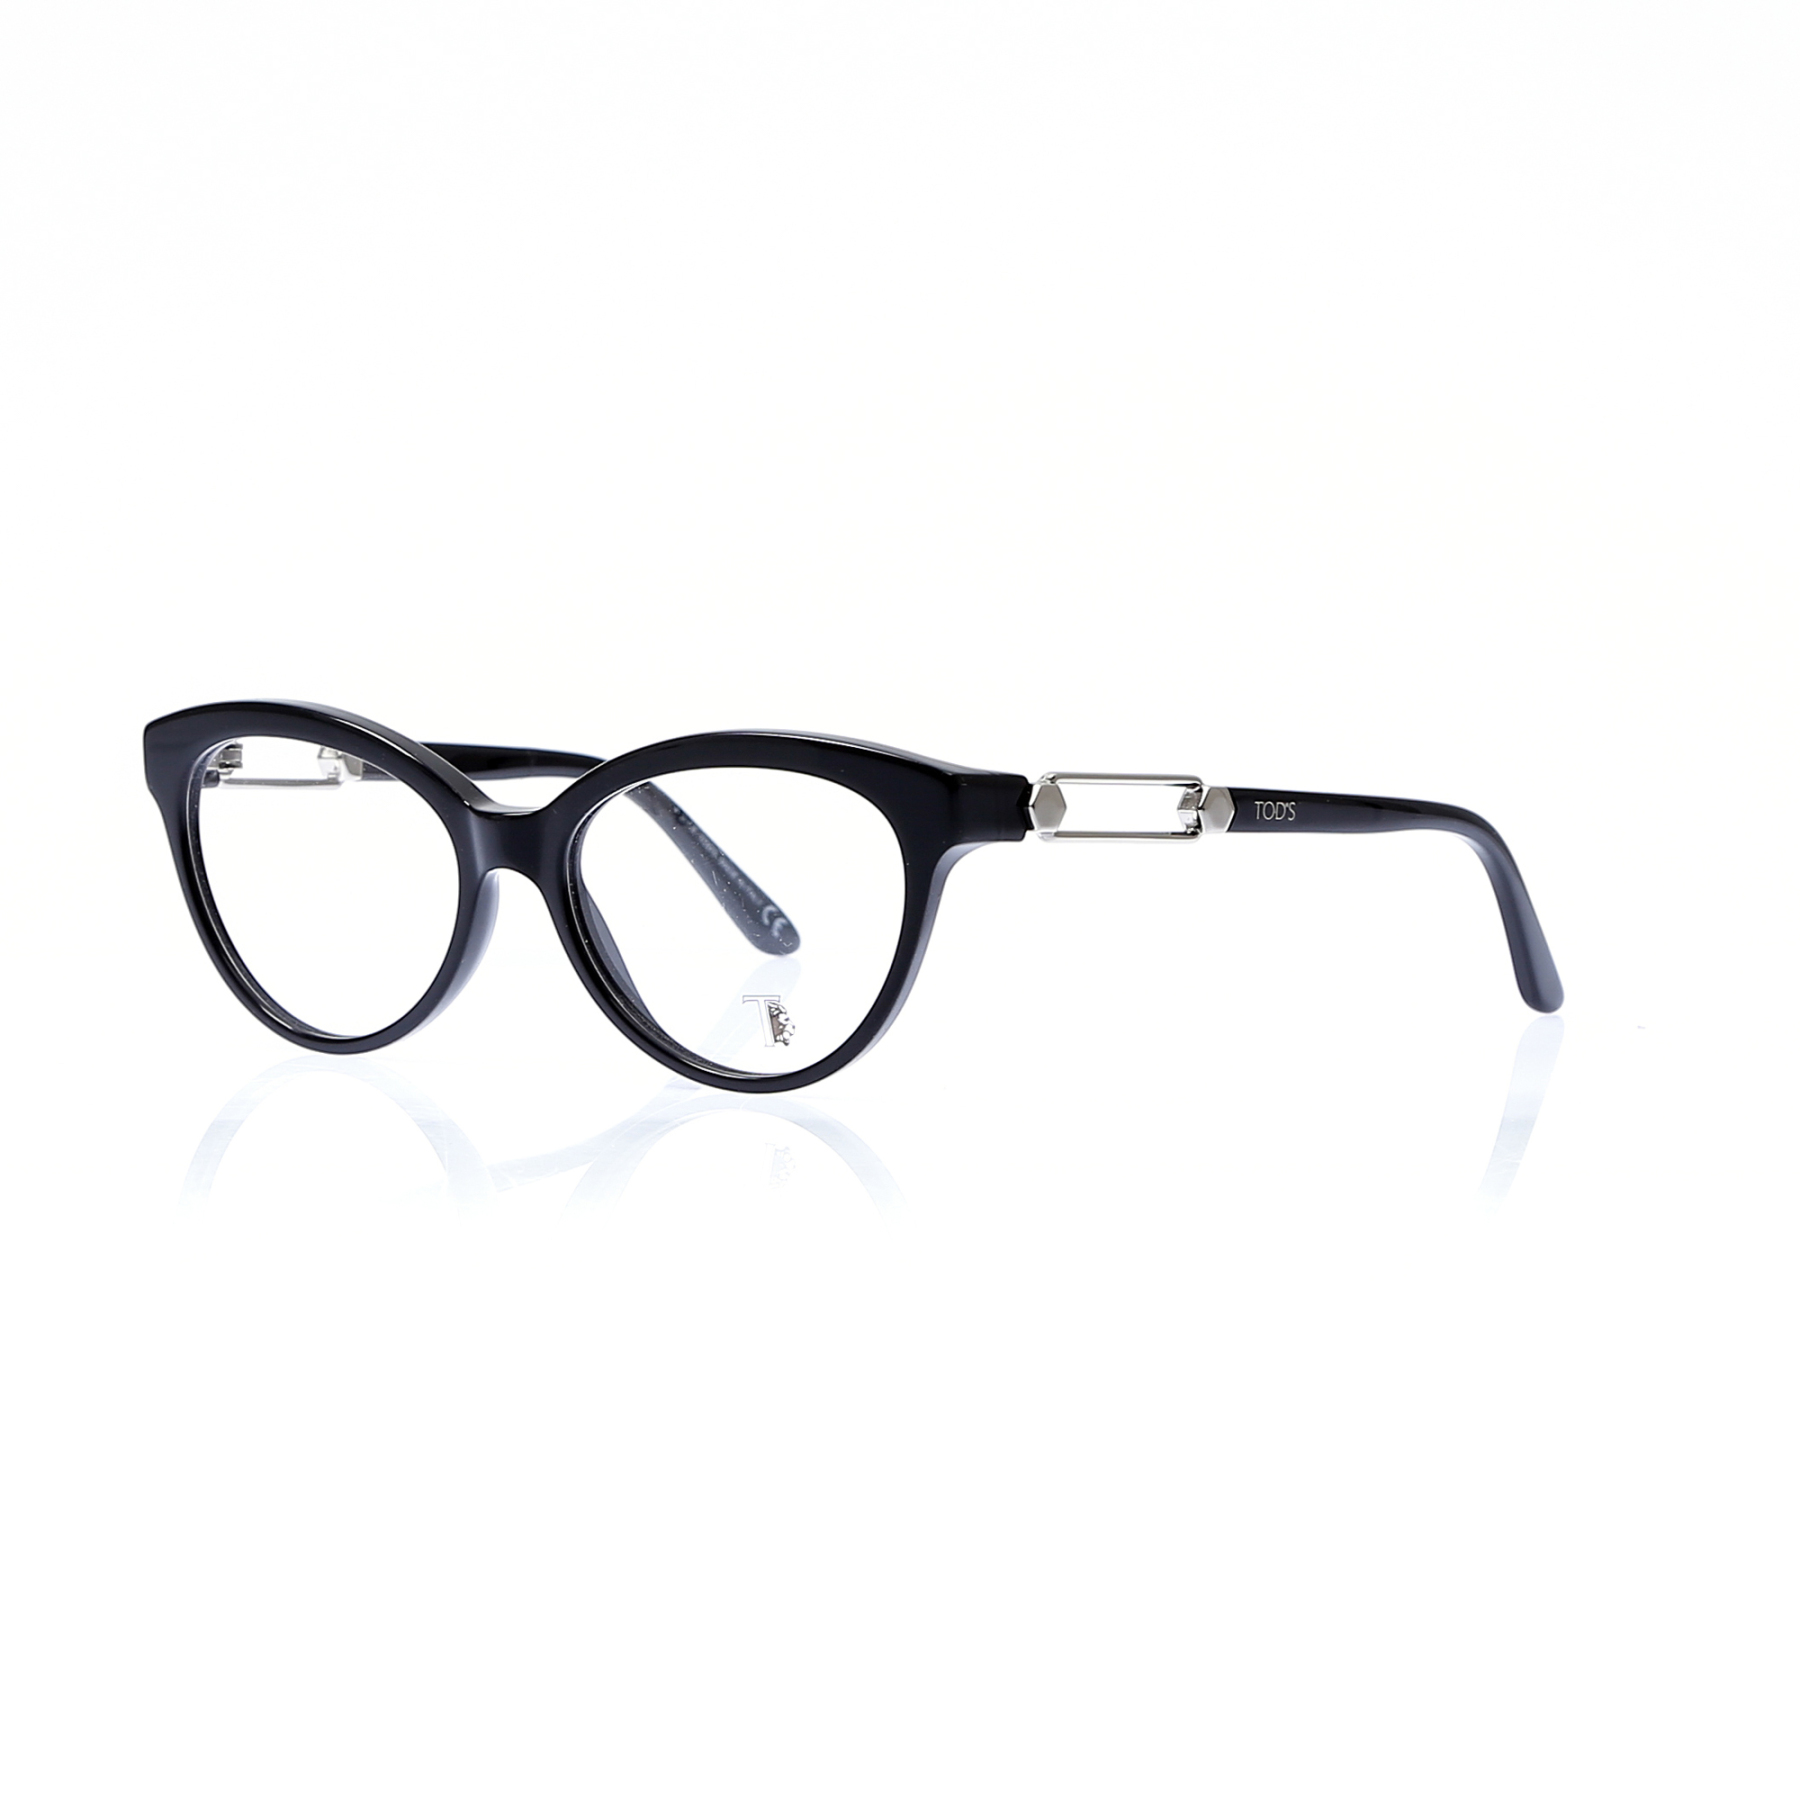 Women's sunglasses to 5162 001 bone black unspecified 52 -- tods